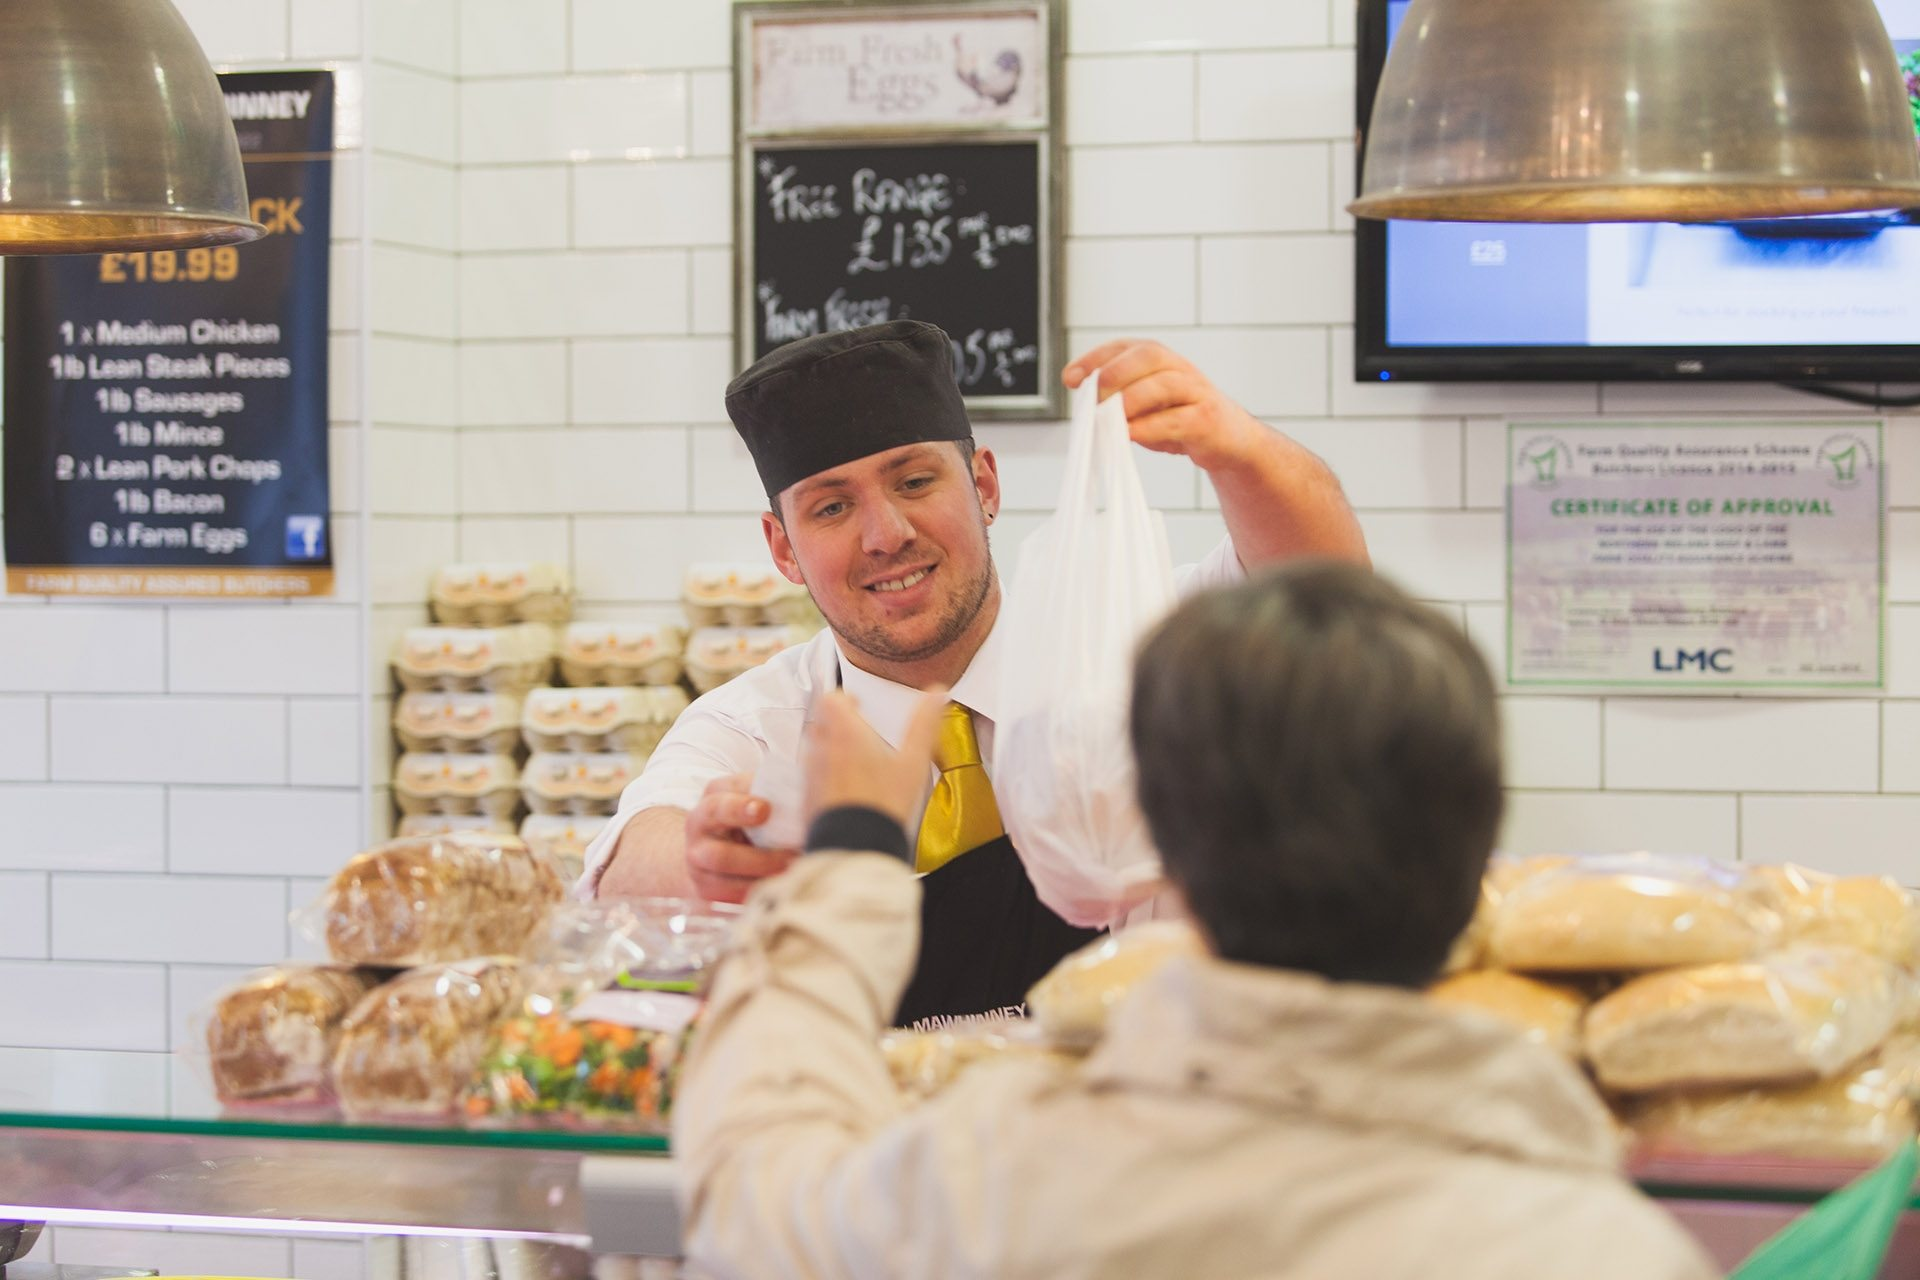 Commercial Event Photography by Bangor Ricky Parker Photography (Mawhinneys Butcher) 1